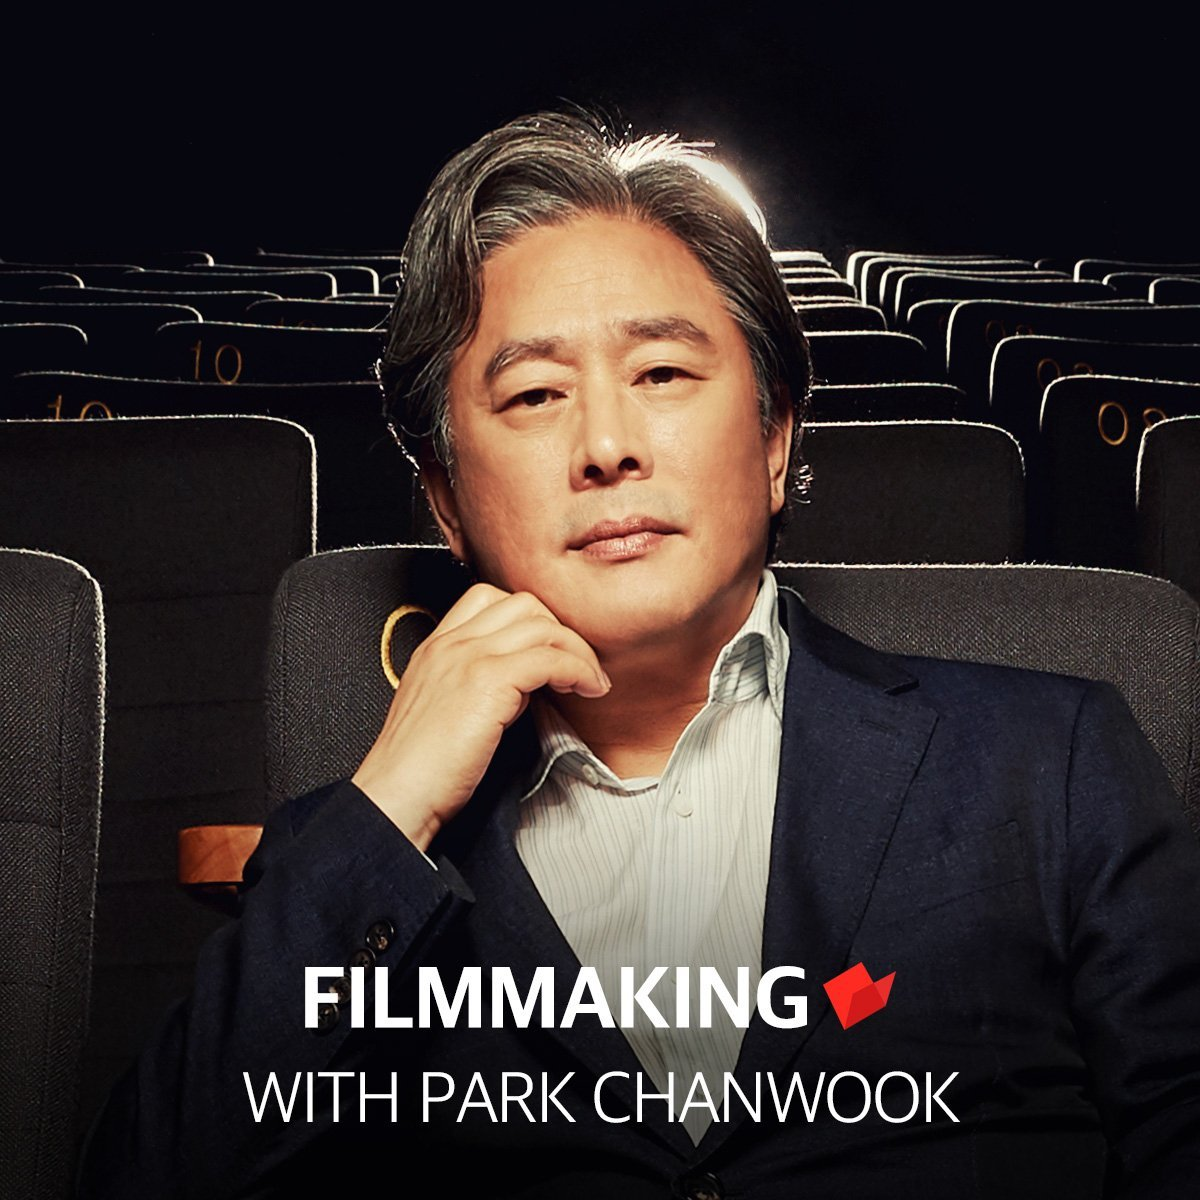 Renowned director Park Chan-wook offers filmmaking lectures on Vible. (Vible)